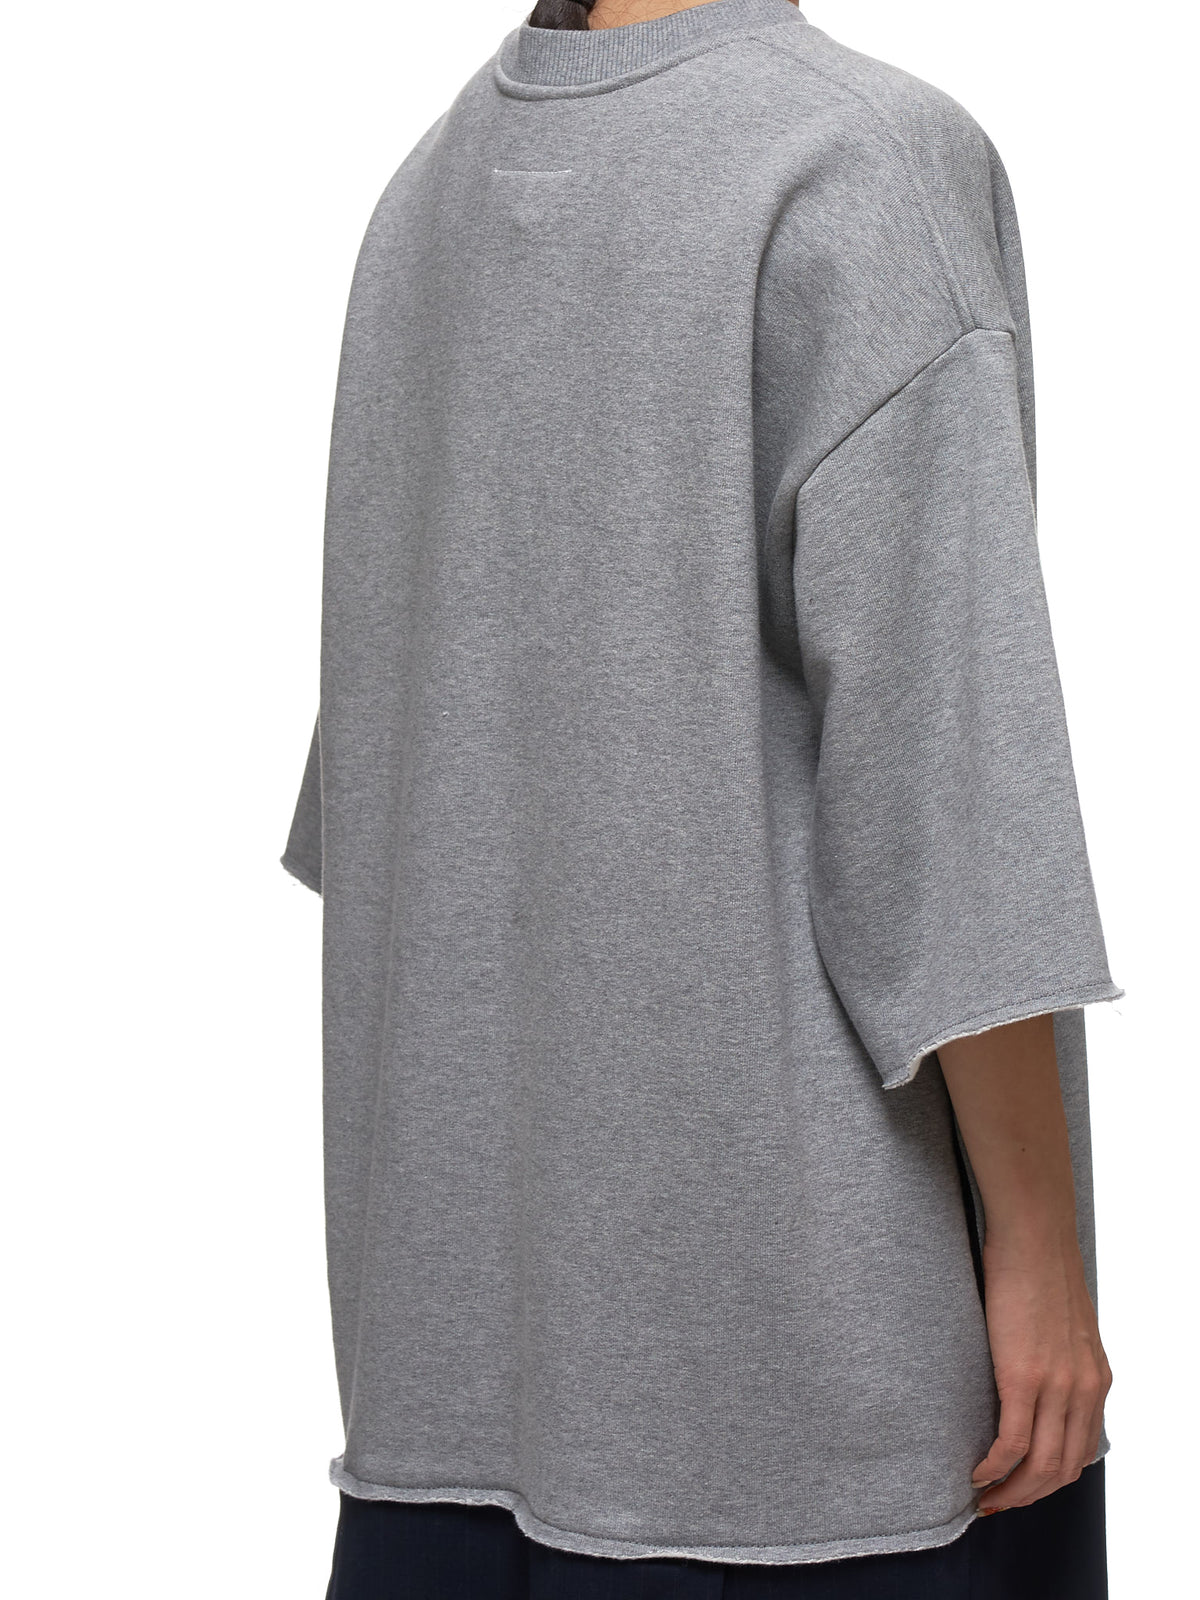 Crew Neck Shirt Dress (S32CU0090-S25387-LIGHT-GREY-BL)